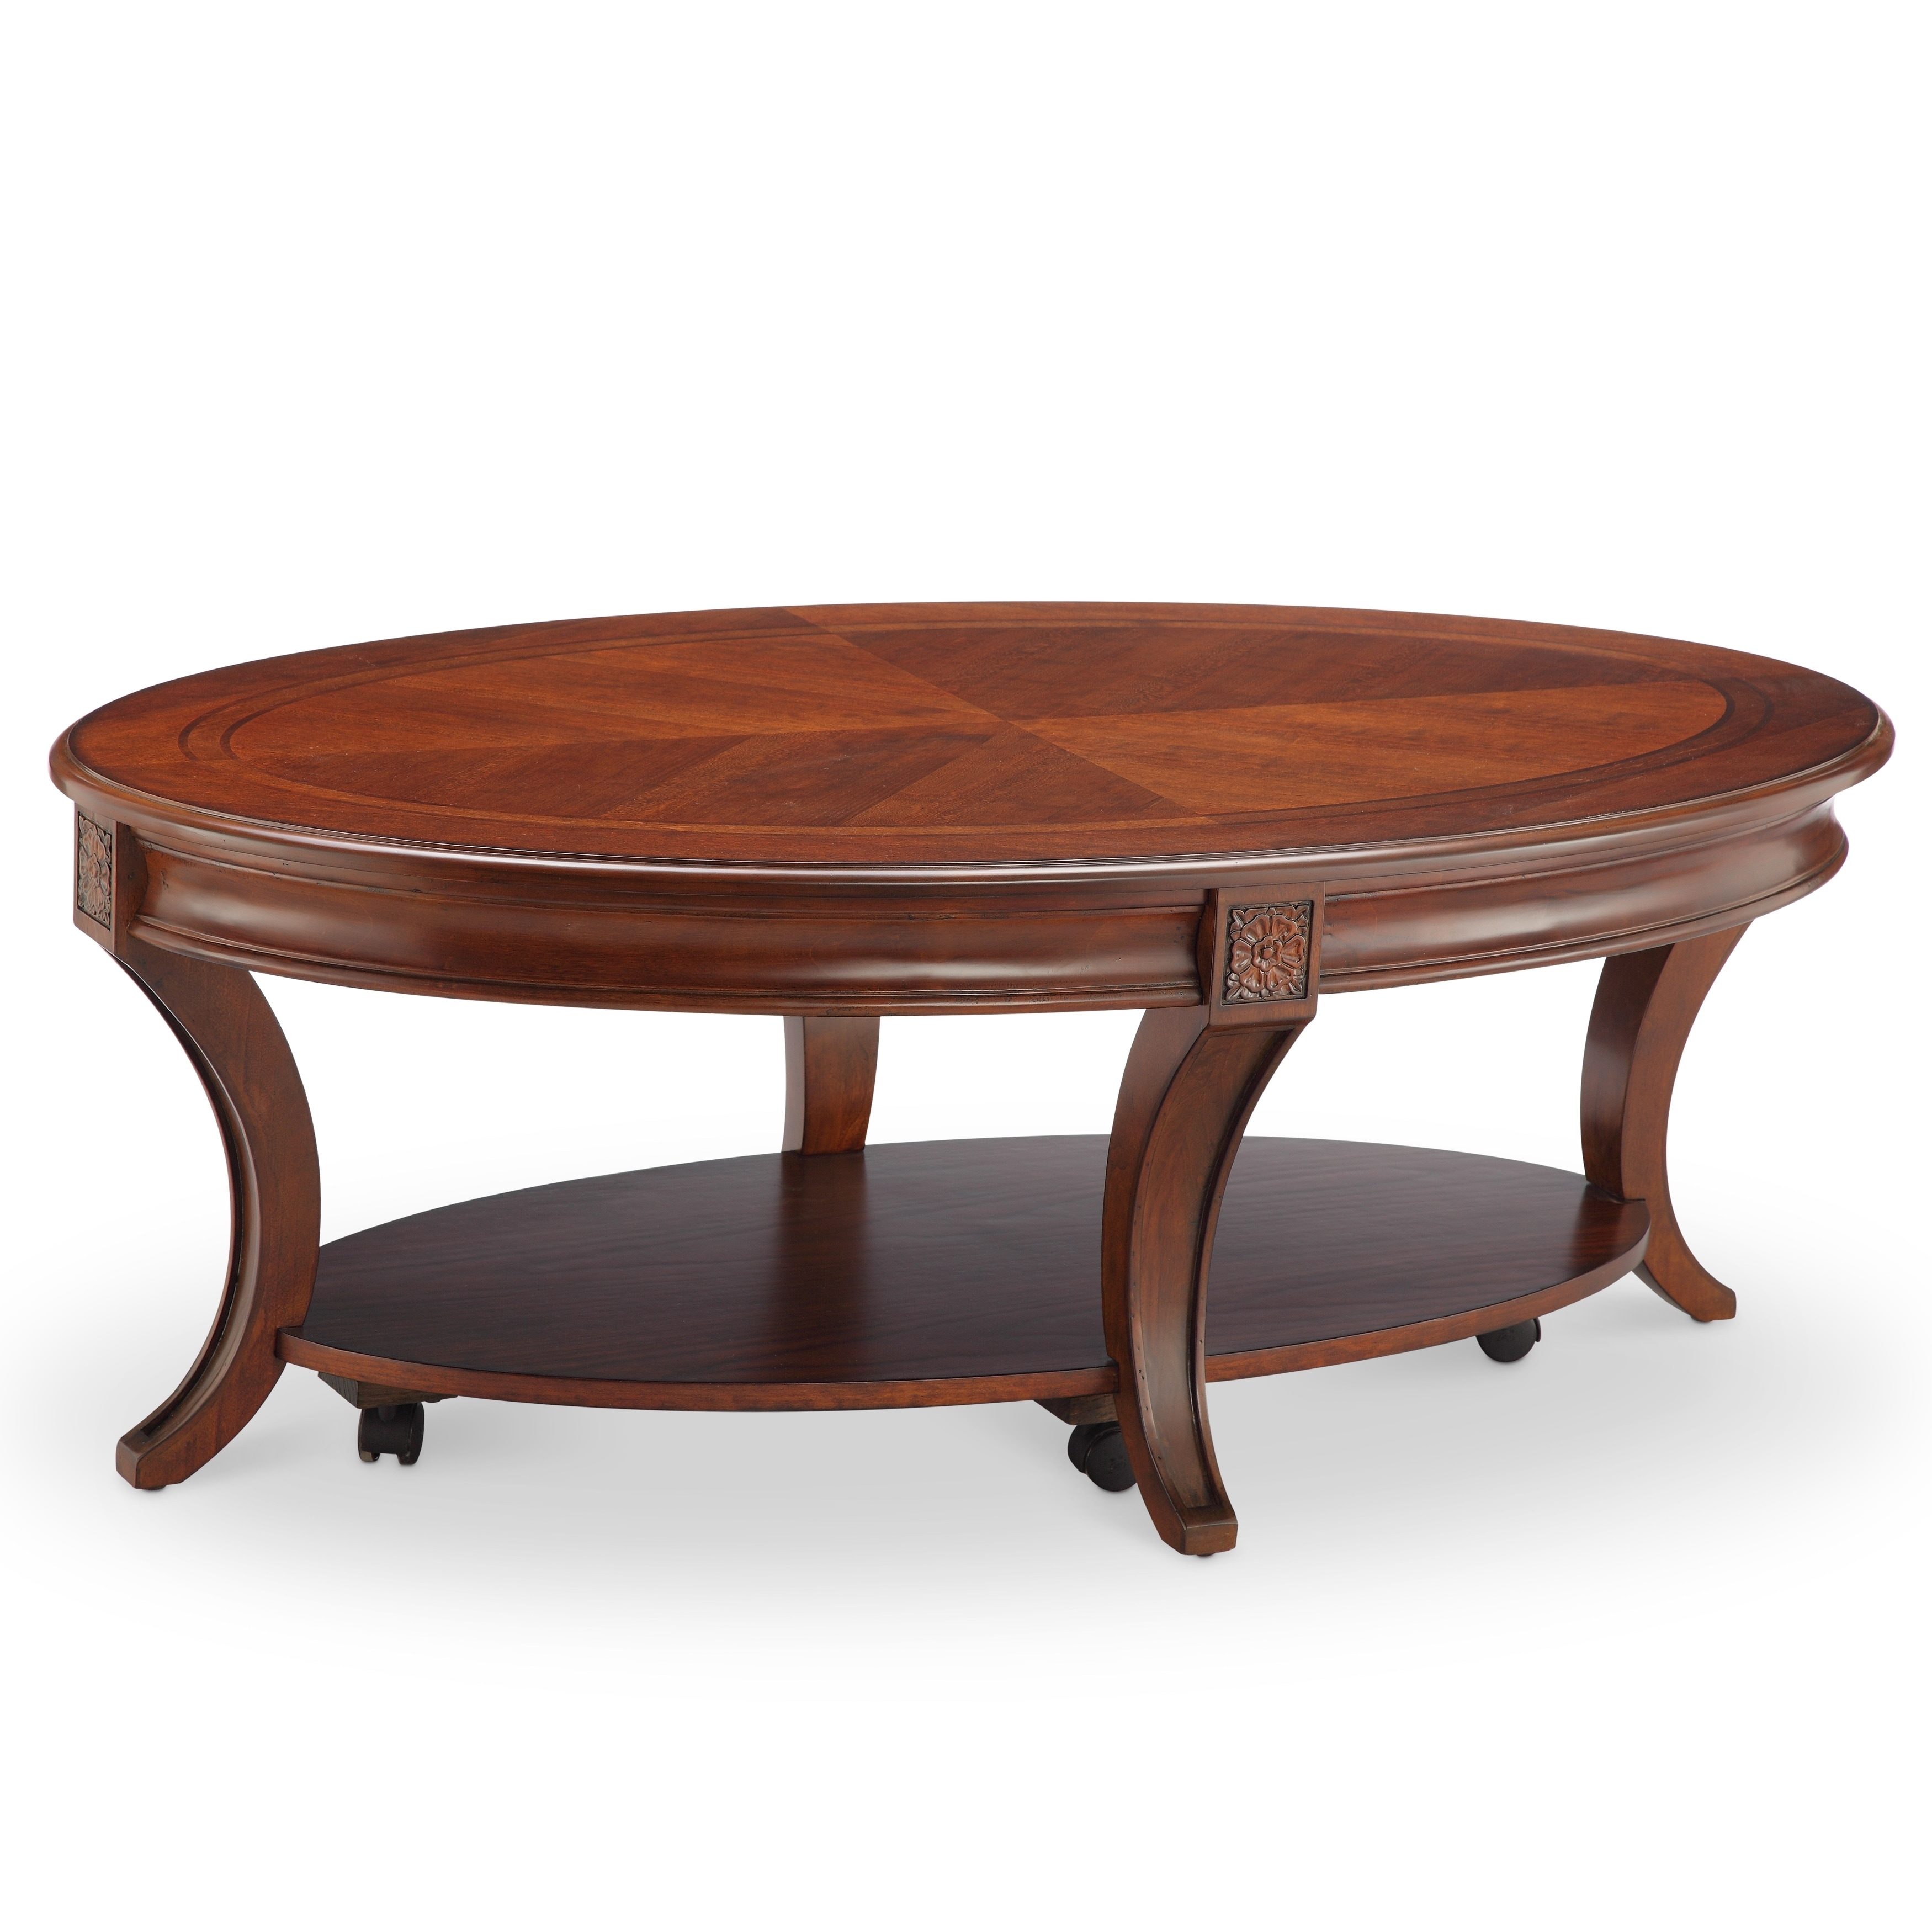 Astonishing Winslet Cherry Finish Wood Oval Coffee Table With Casters Pabps2019 Chair Design Images Pabps2019Com